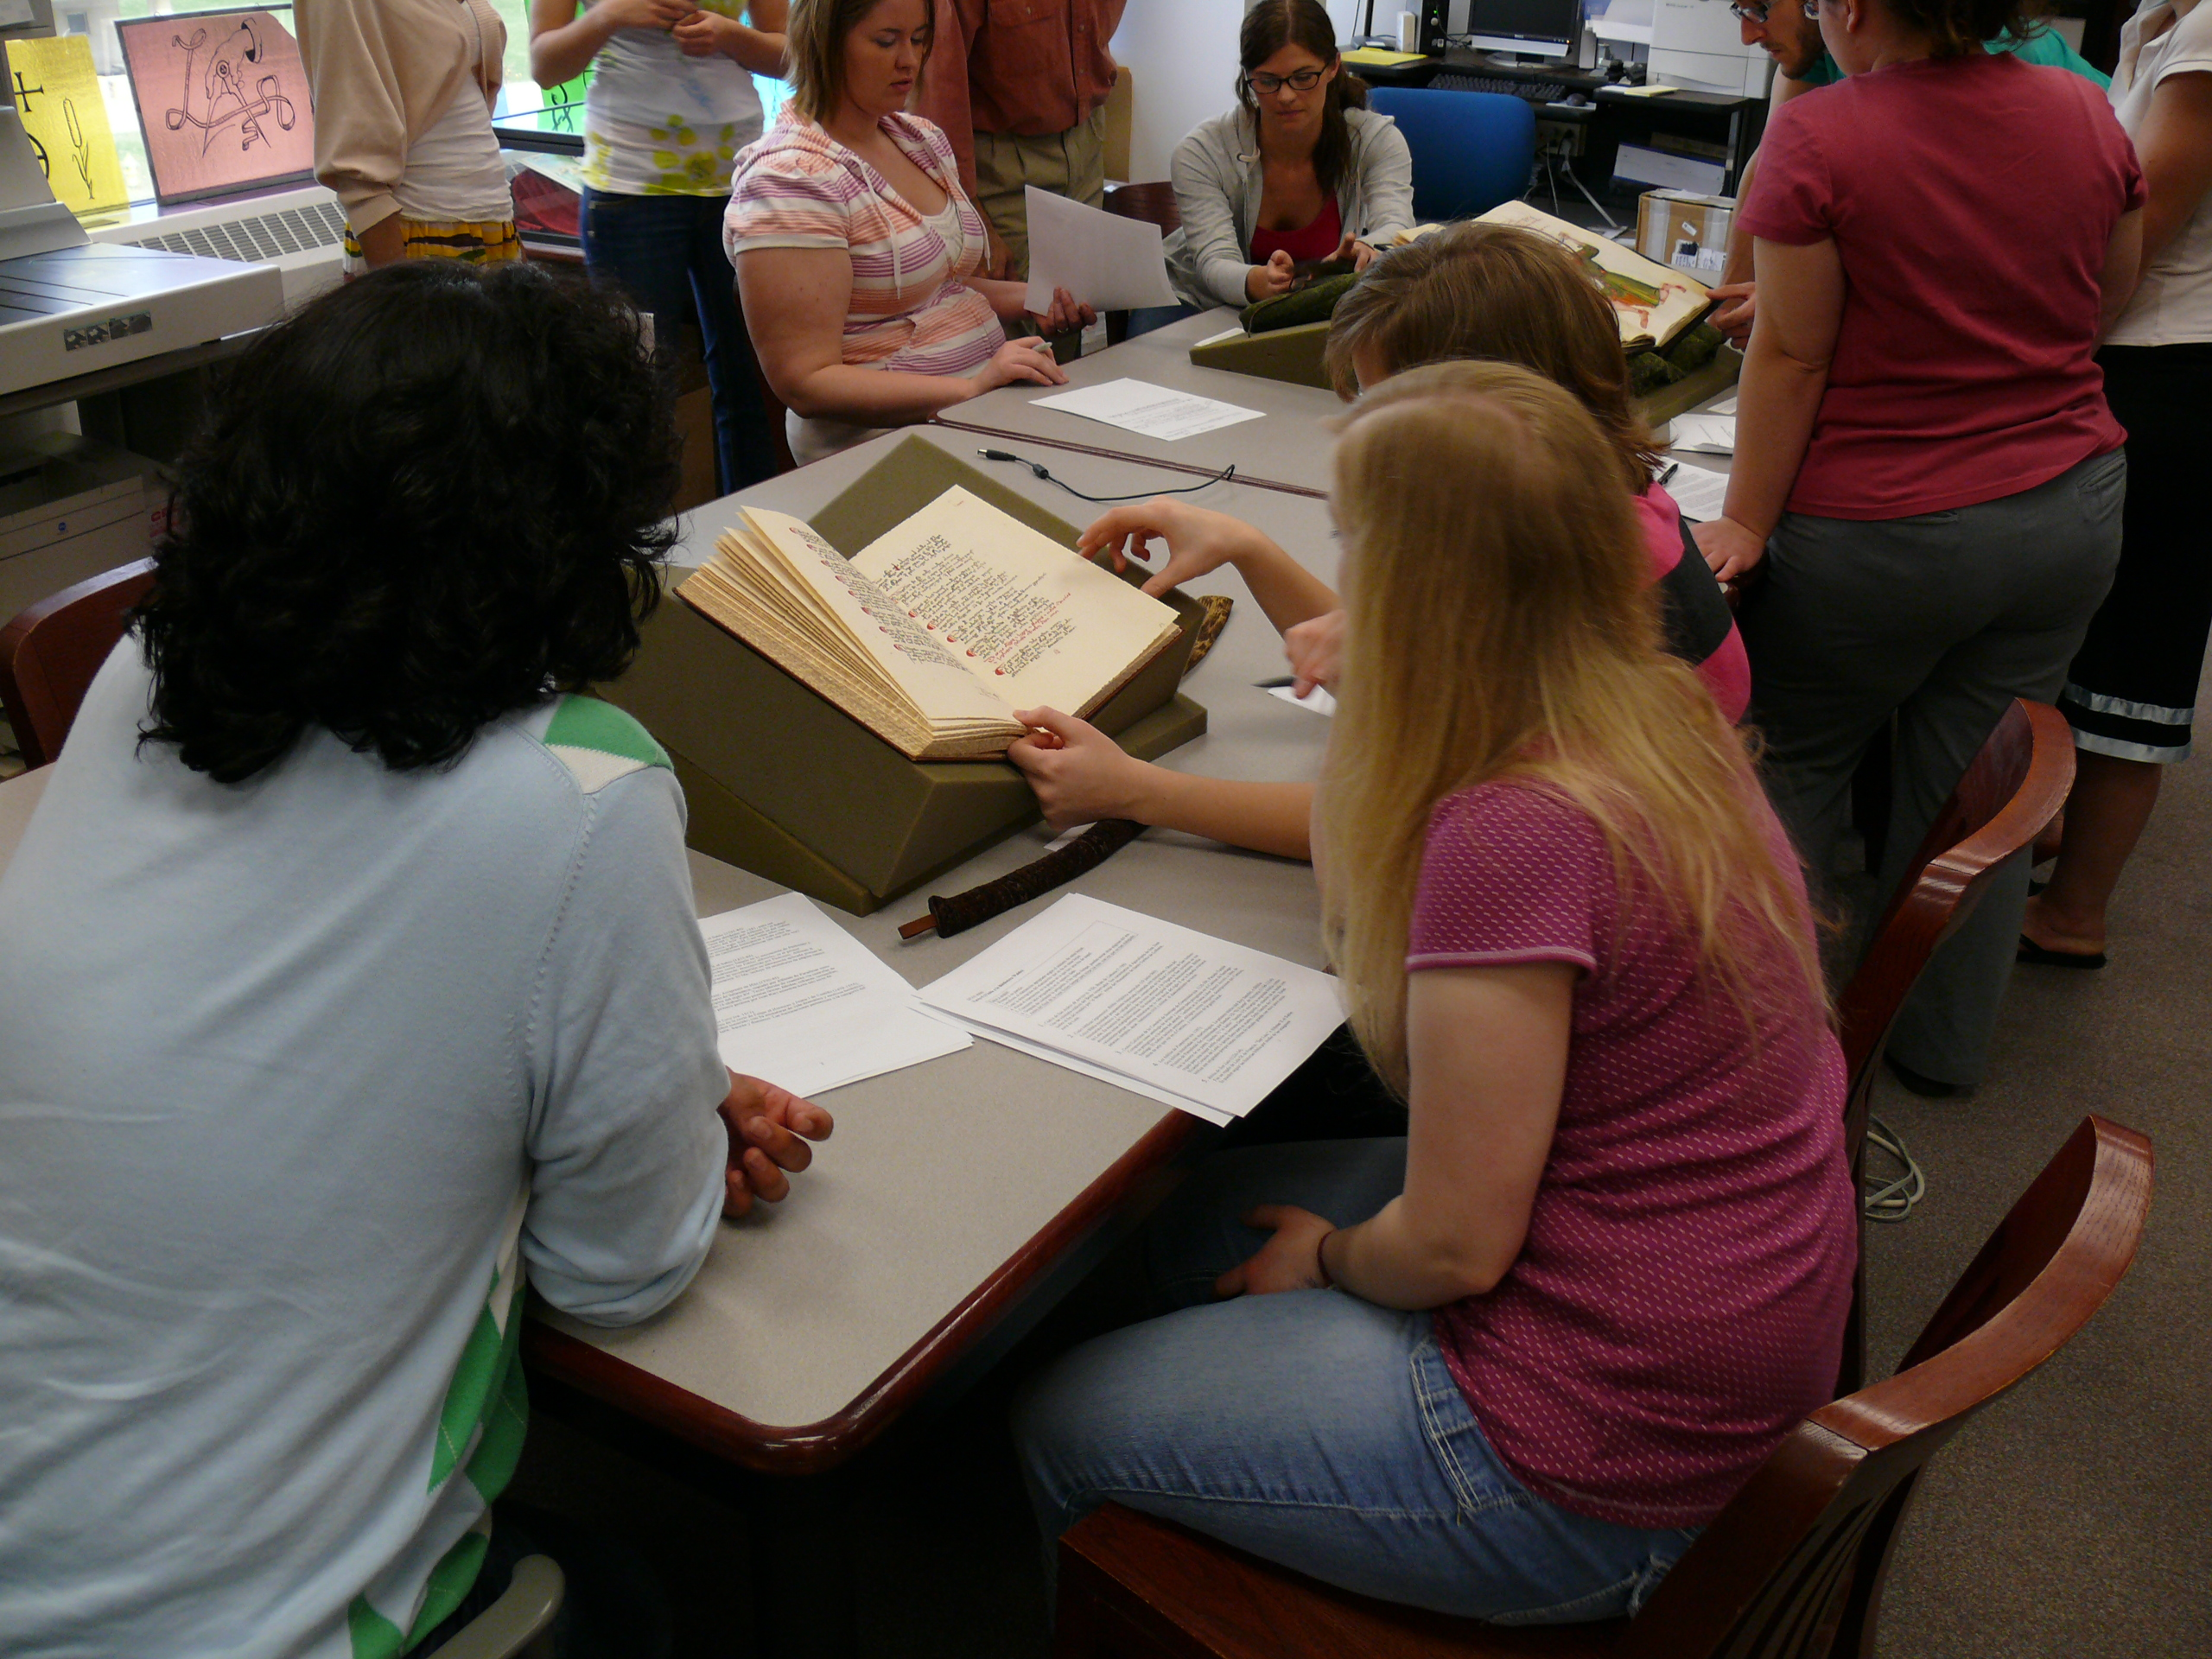 Students consulting rare books during a course visit